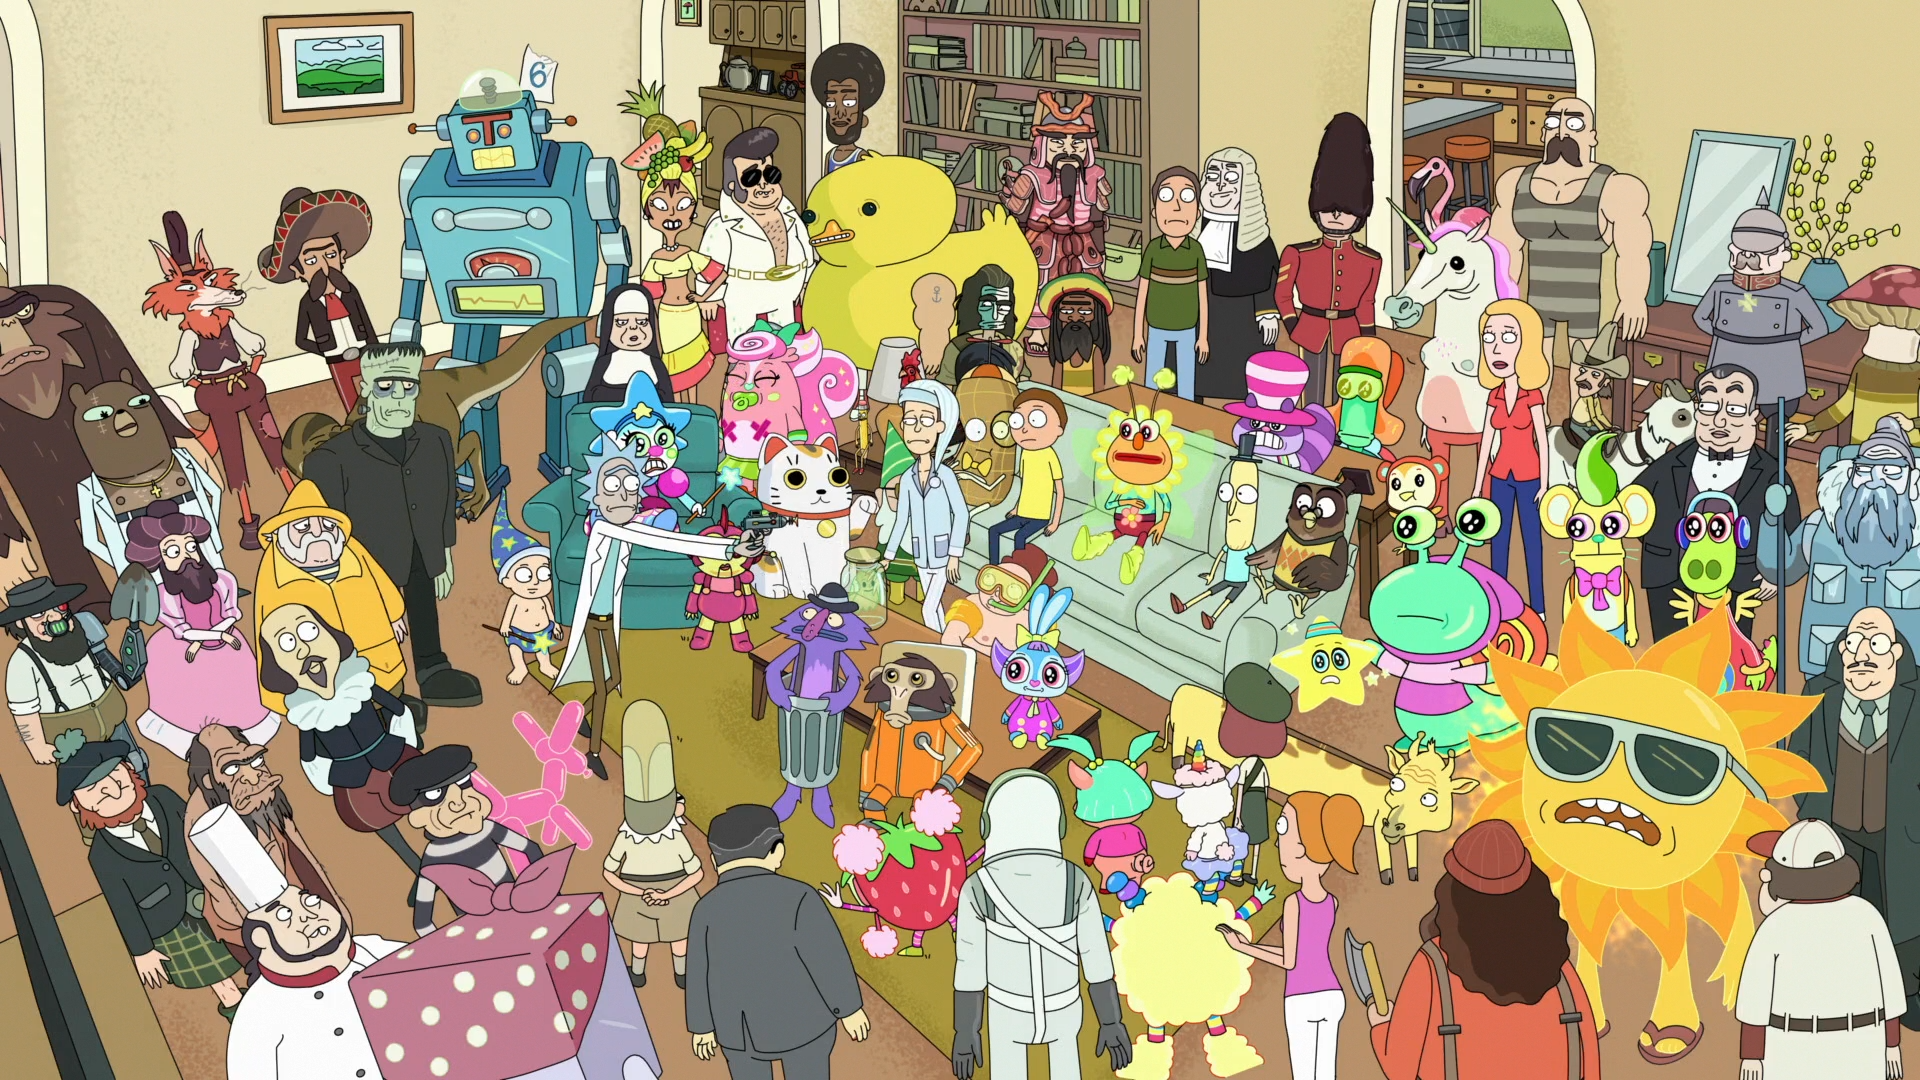 Rick Amp Morty Where Is Waldo Parasite Episode 1920x1080 Rick And Morty Poster Cartoon Wallpaper Rick And Morty